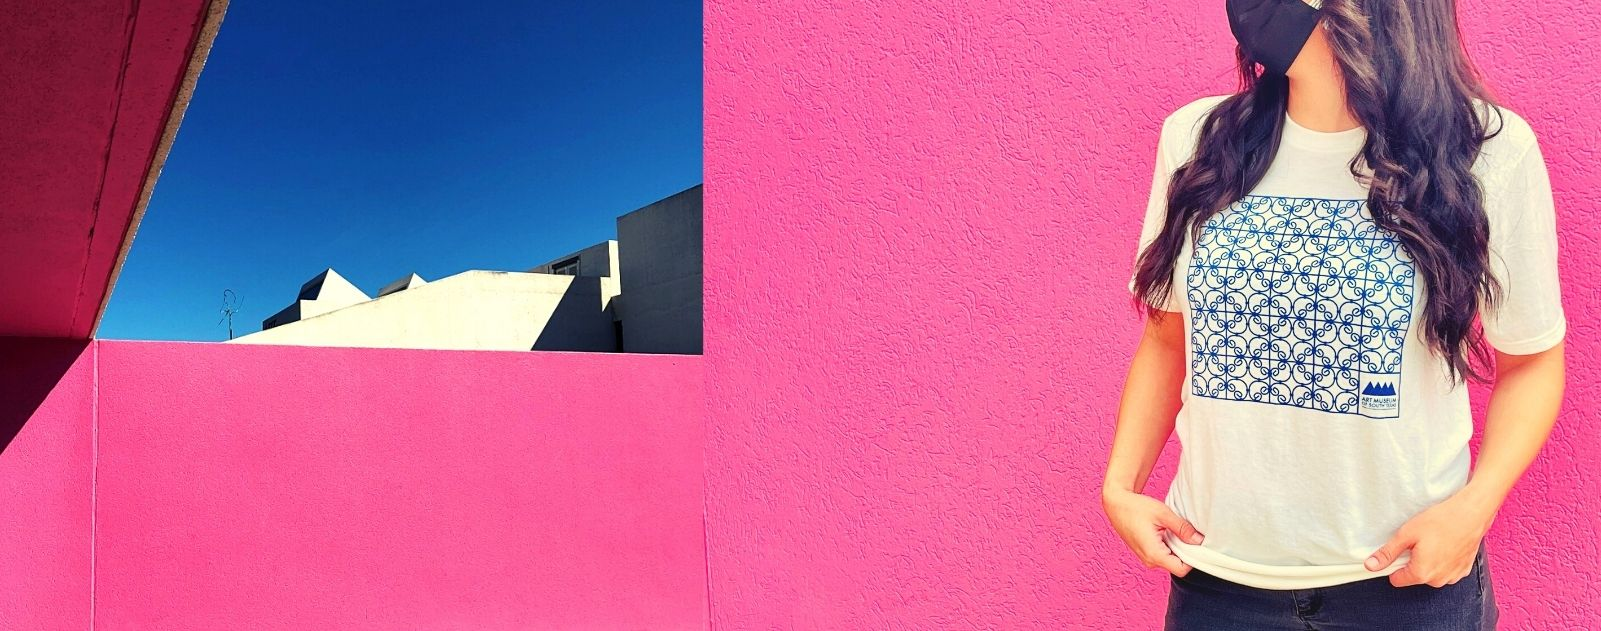 Pink Wall Wednesday